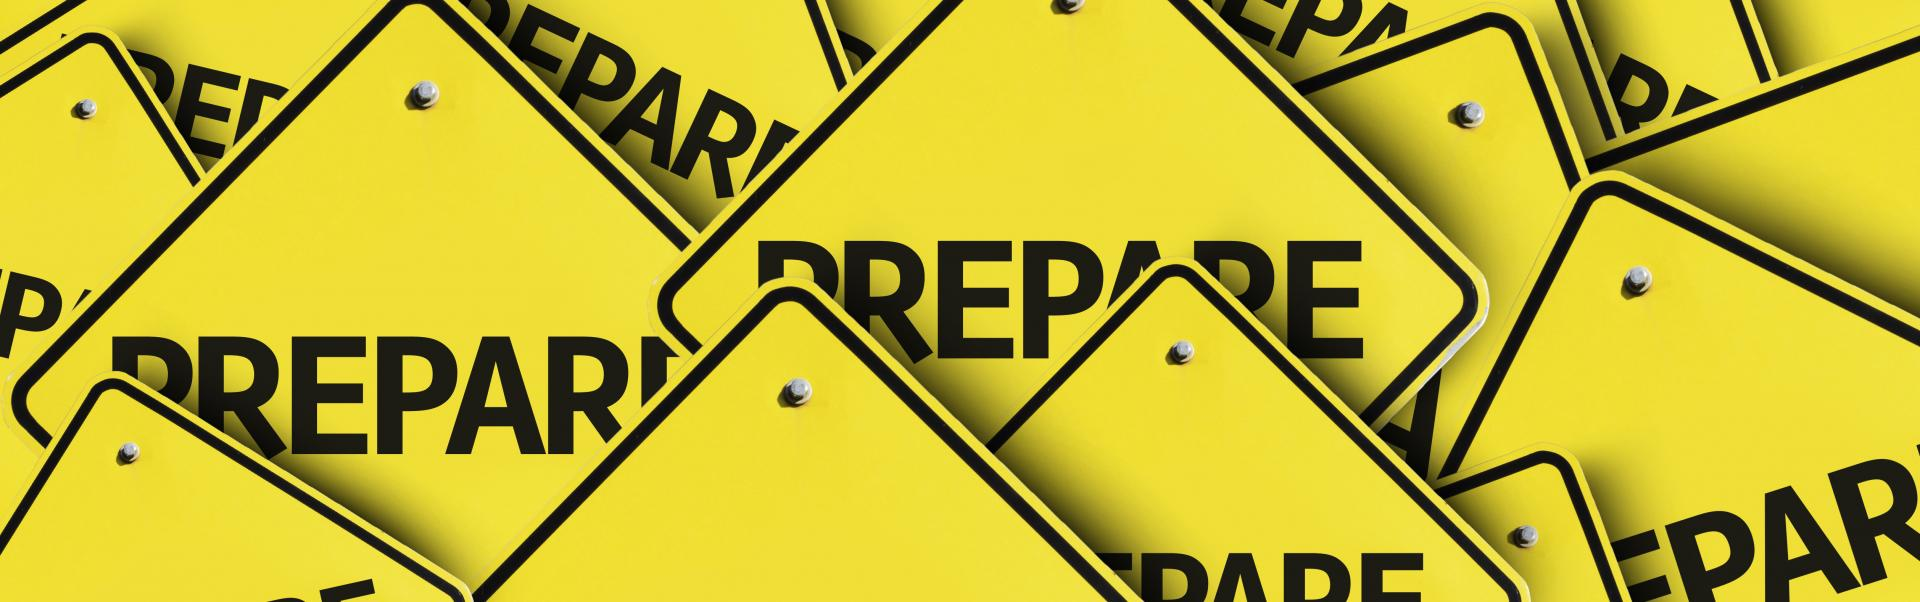 "Yellow signs displaying the word ""prepare"""